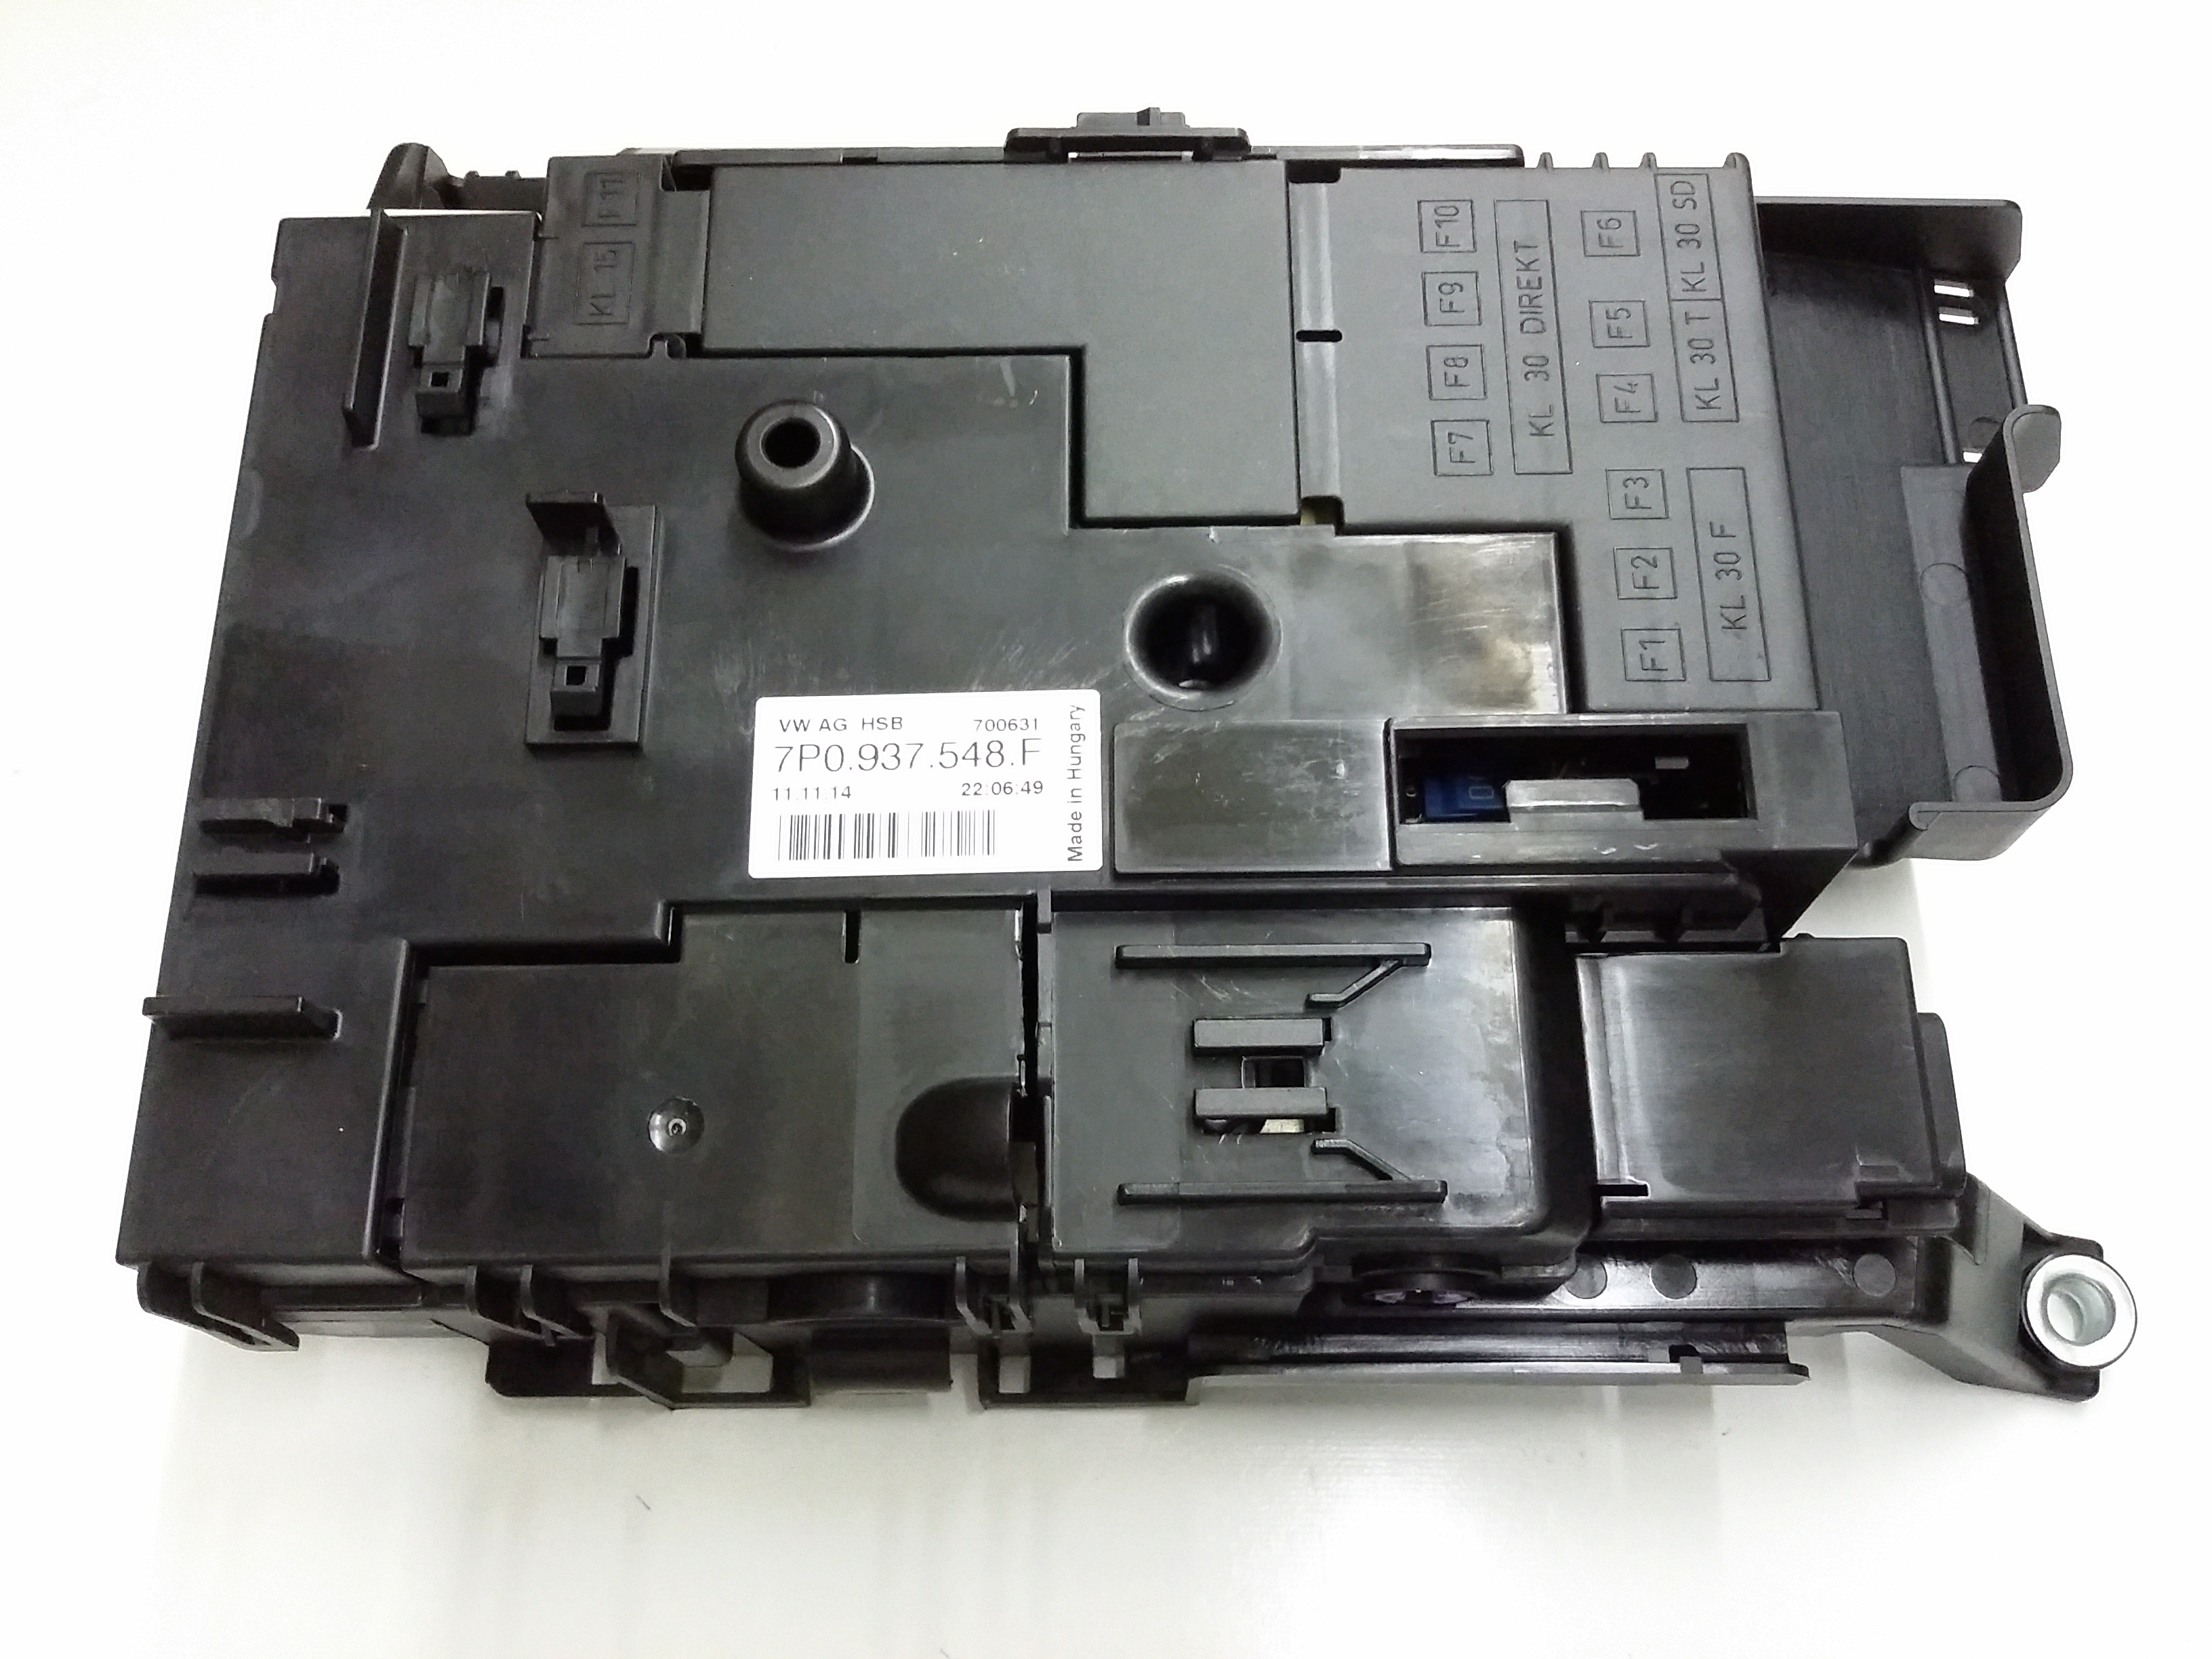 Vw Fuse Box Engine Conpartment Free Wiring Diagram For You 2013 Beetle Location Volkswagen Touareg Passenger 95 Passat